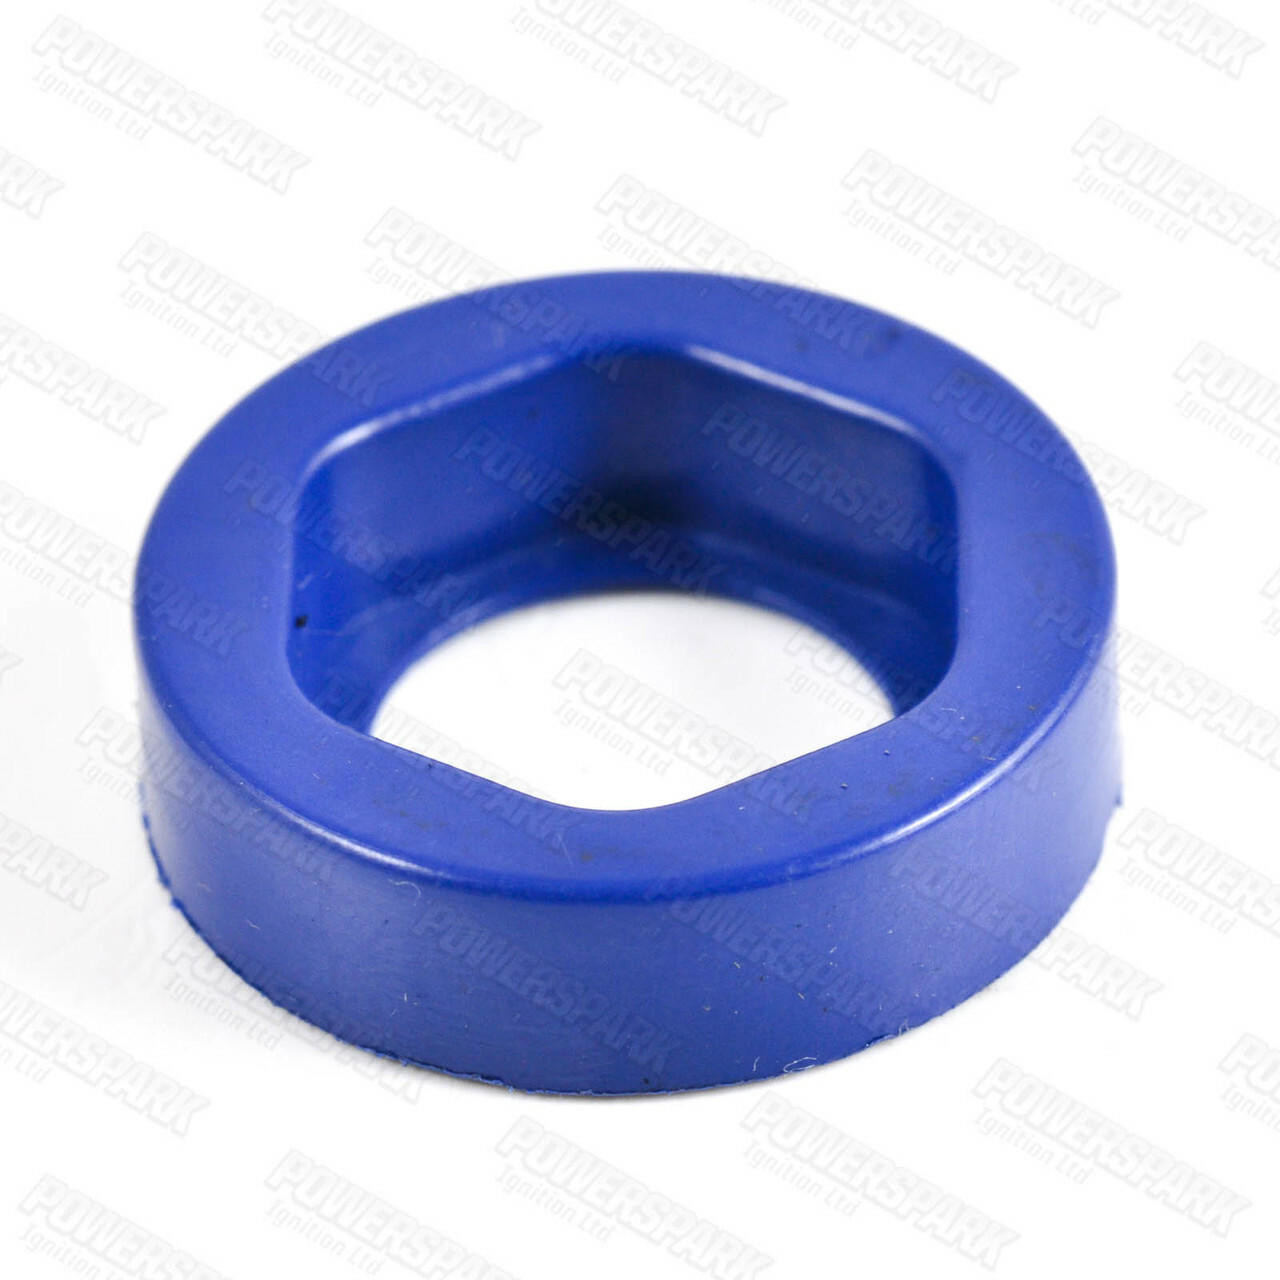 Powerspark 22D6 6 Cyl Ignition Kit Trigger Ring Blue